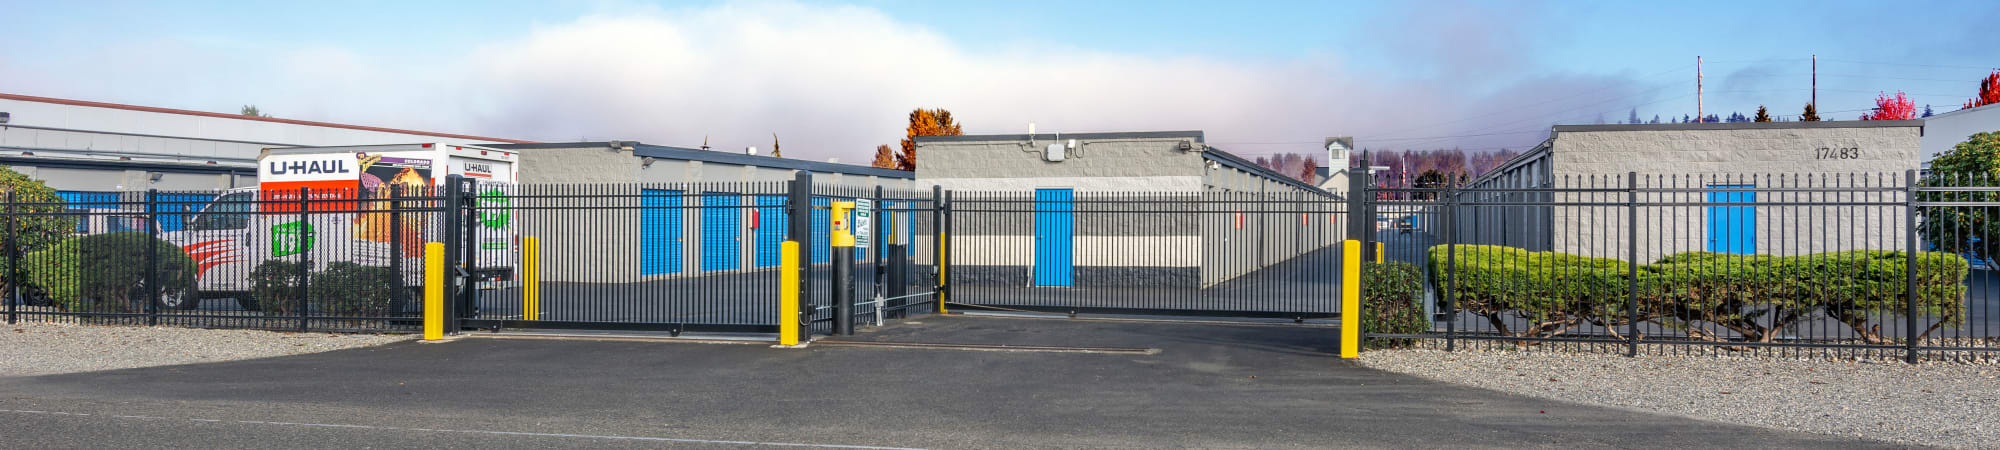 Glacier West Self Storage storage units for rent in Monroe, Washington